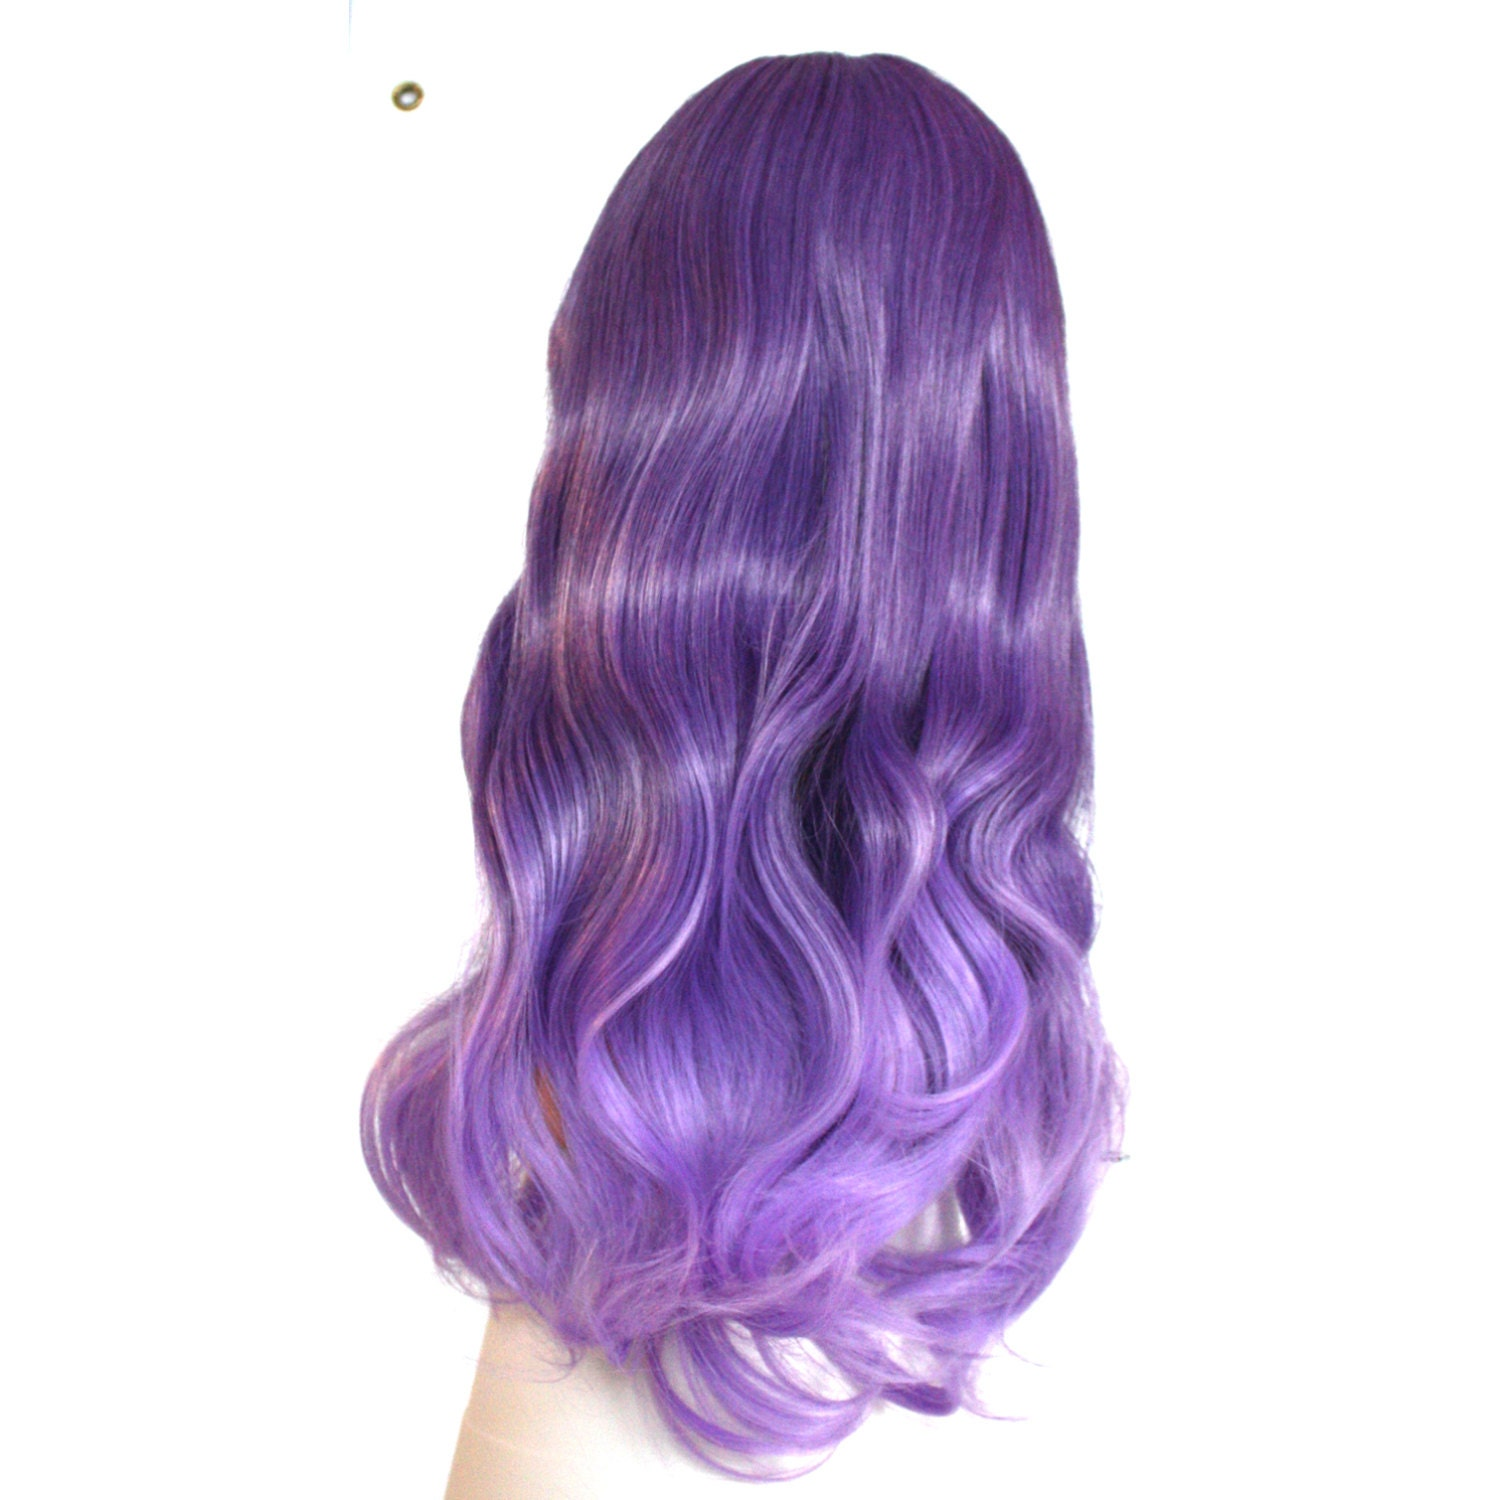 Eggplant Ombr By Wendy Walker Hair Color Pinterest Of